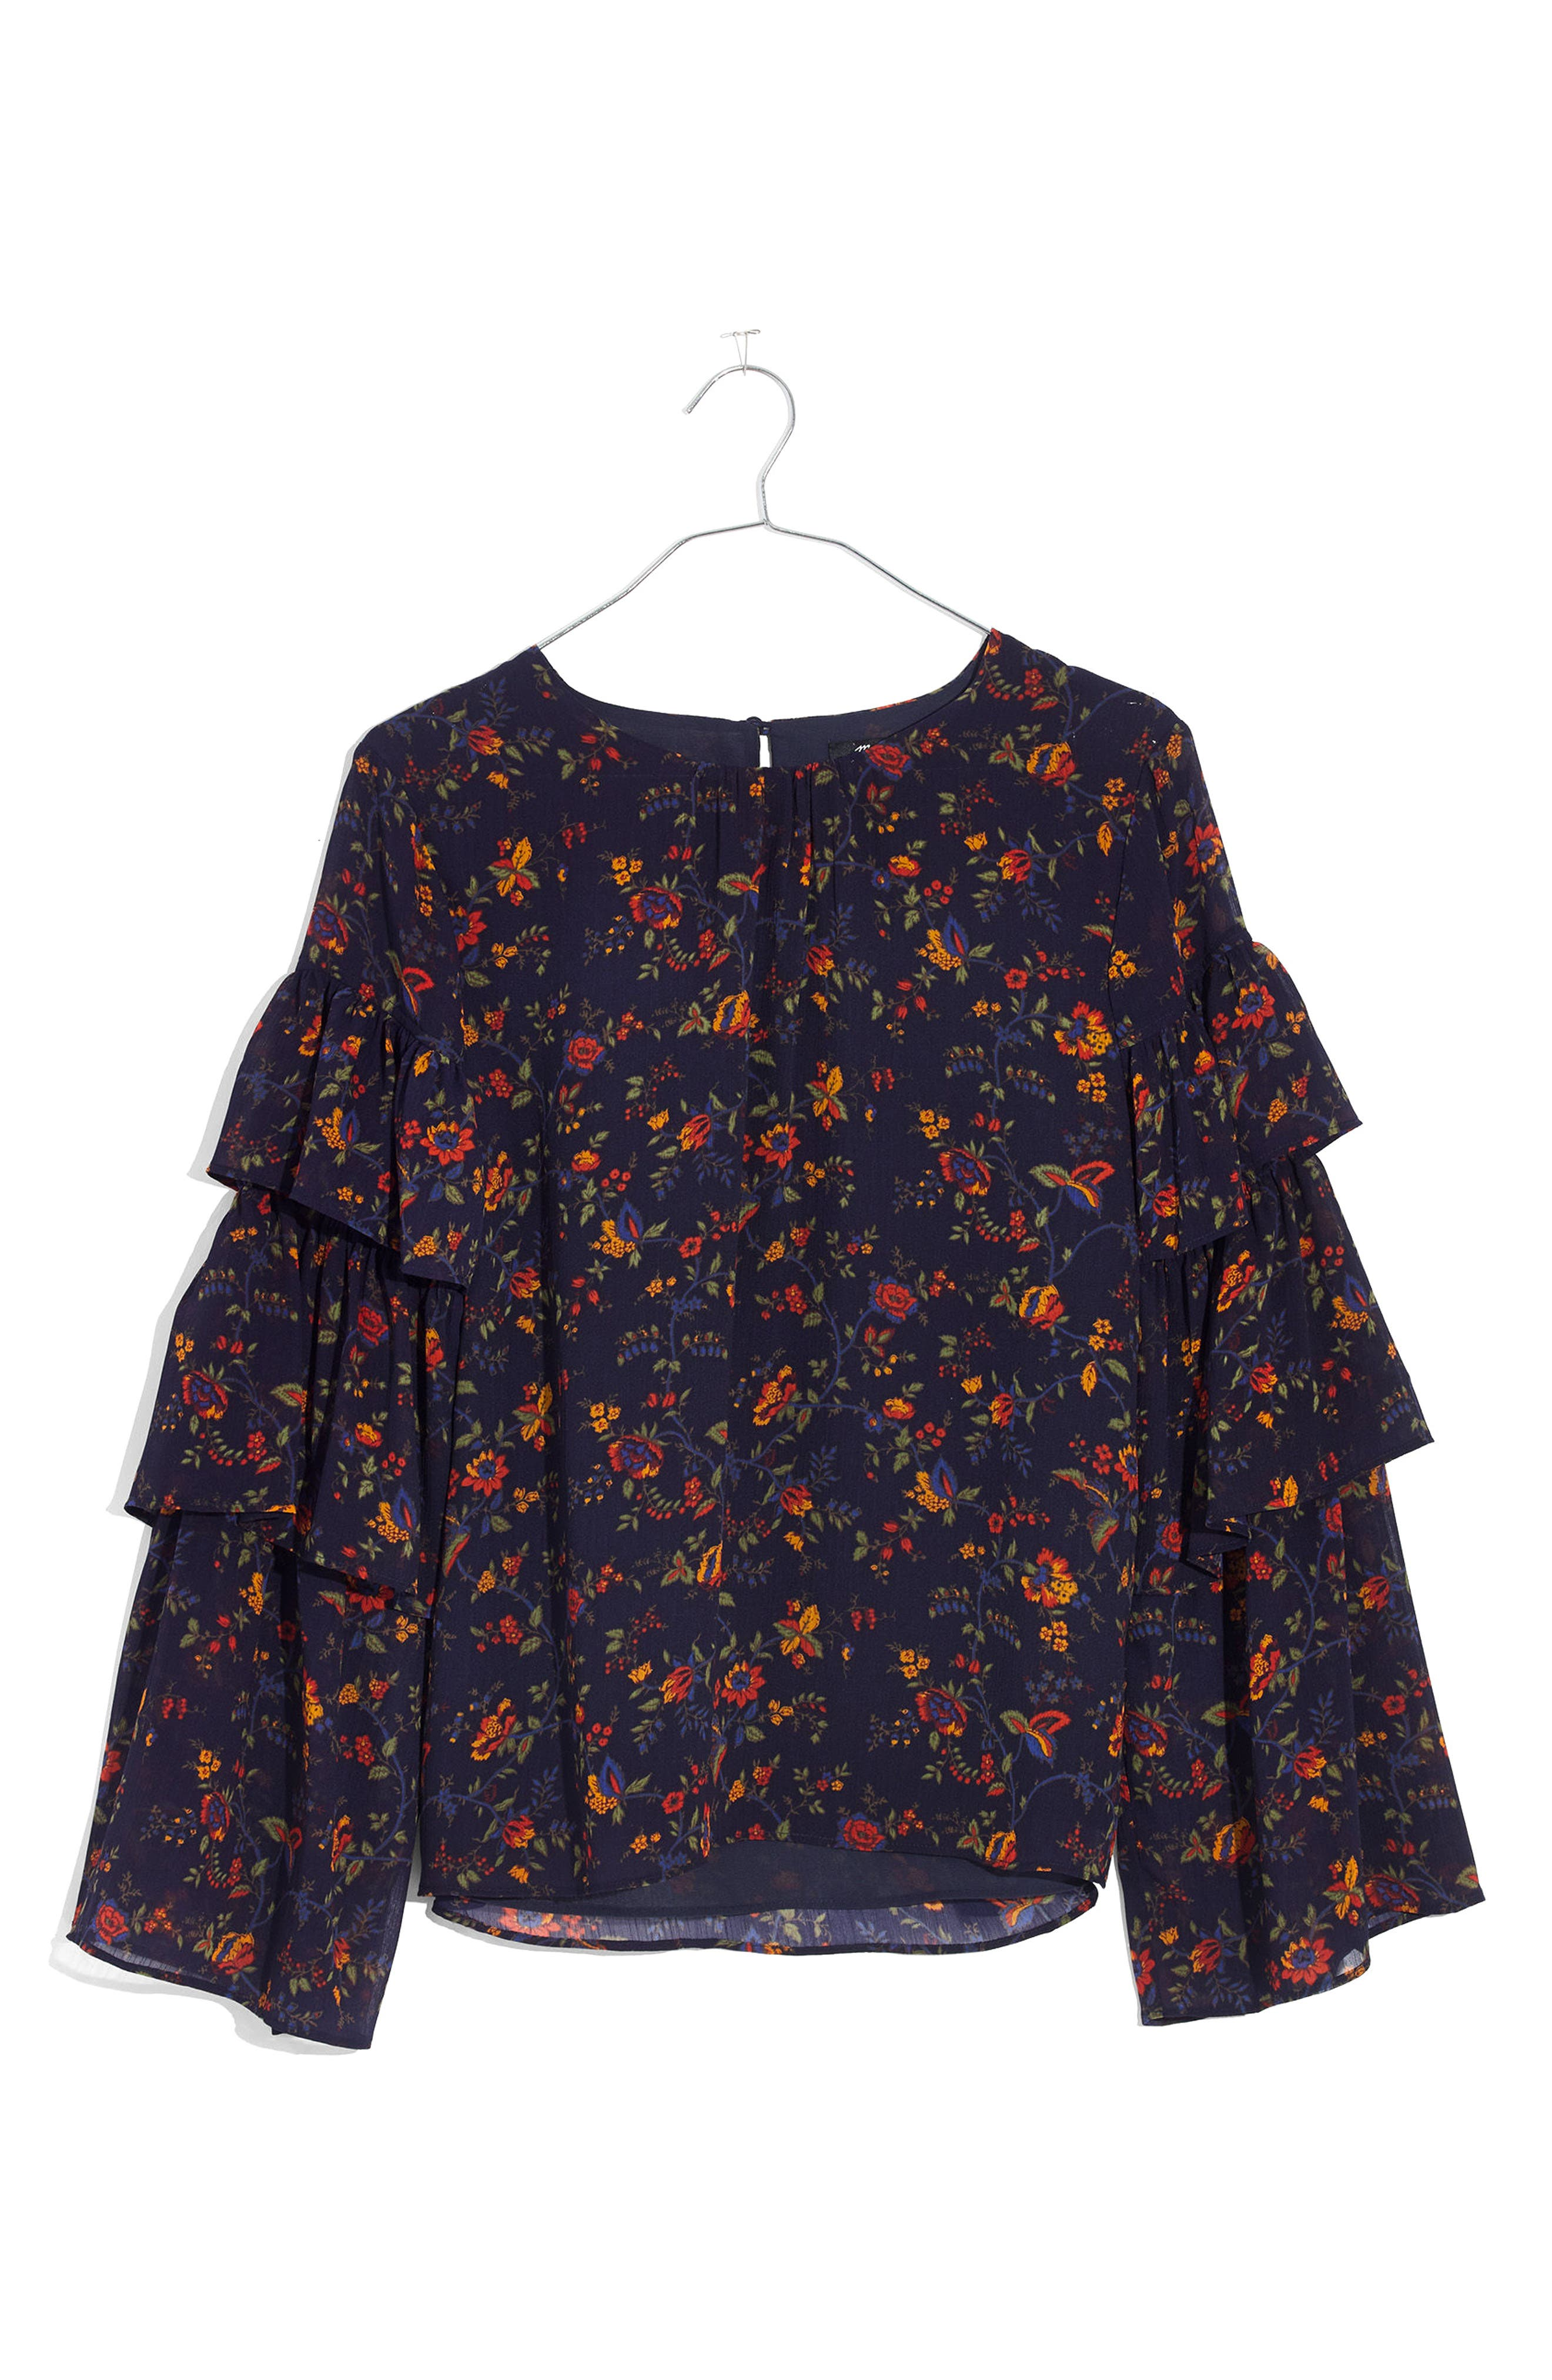 Ruffle Sleeve Top,                             Alternate thumbnail 3, color,                             Oriental Floral Midnight